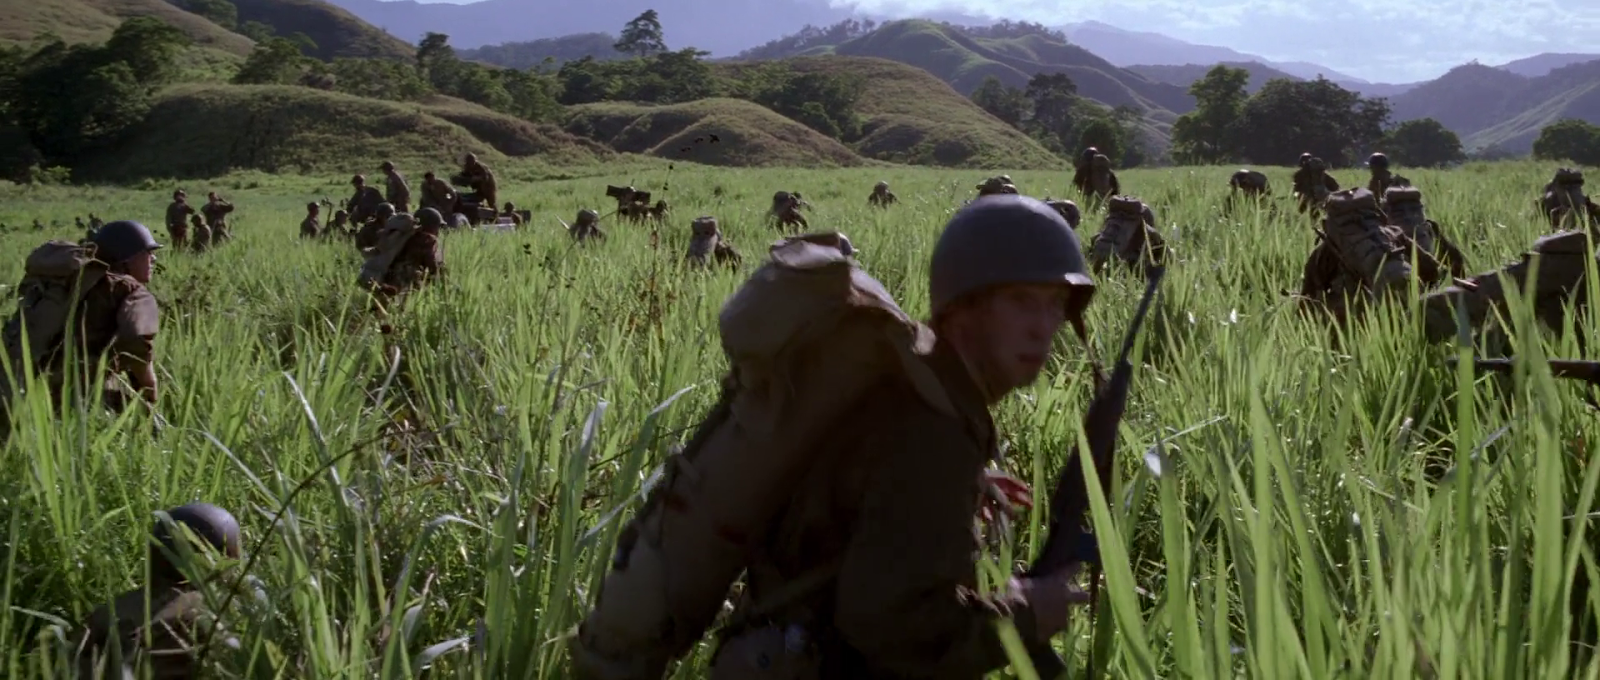 and so it begins top things i love about the thin red line saving private ryan uses this walking through the field scene as a source of humor ck prefers not to see the humor in war and i think it is far more